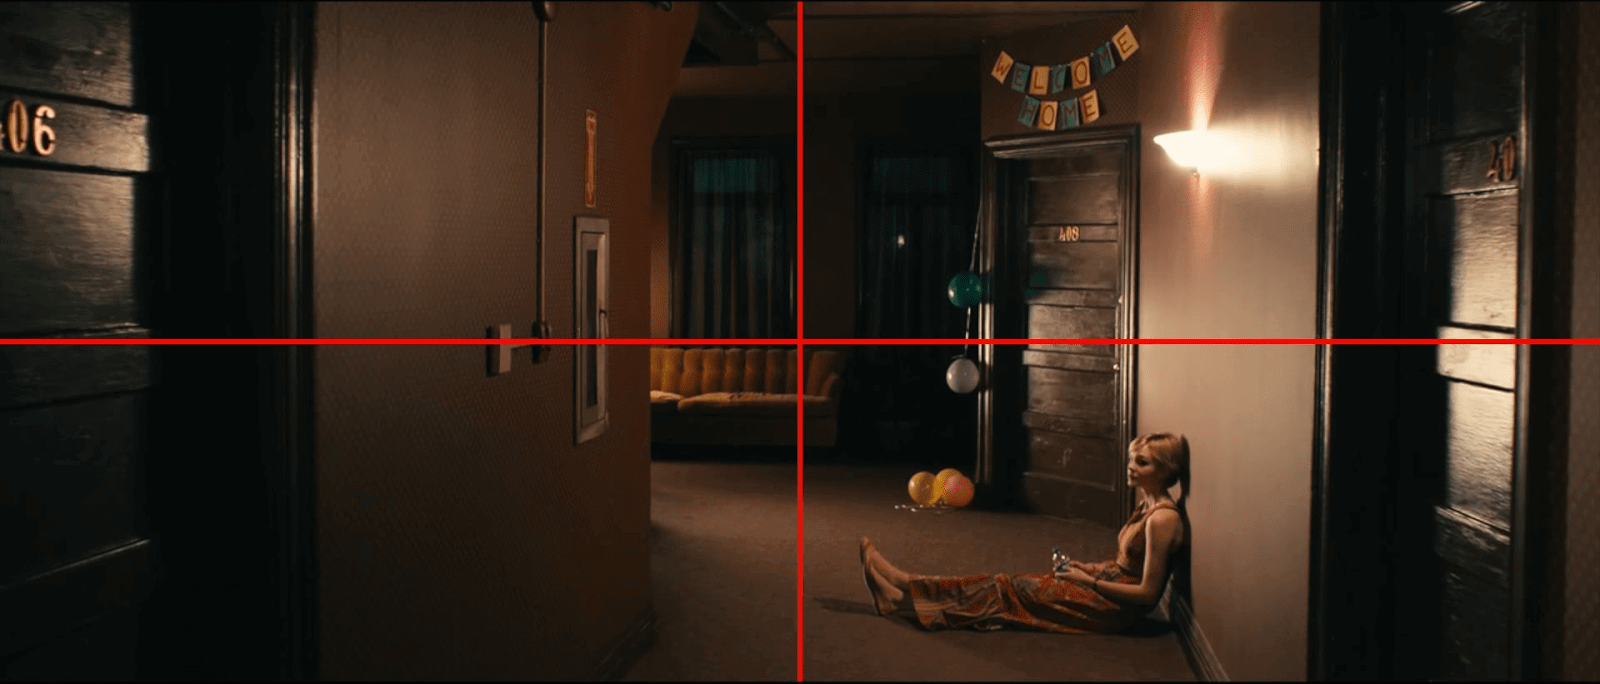 4 Rules of Composition That Will Make your Frames Pop - Drive-6